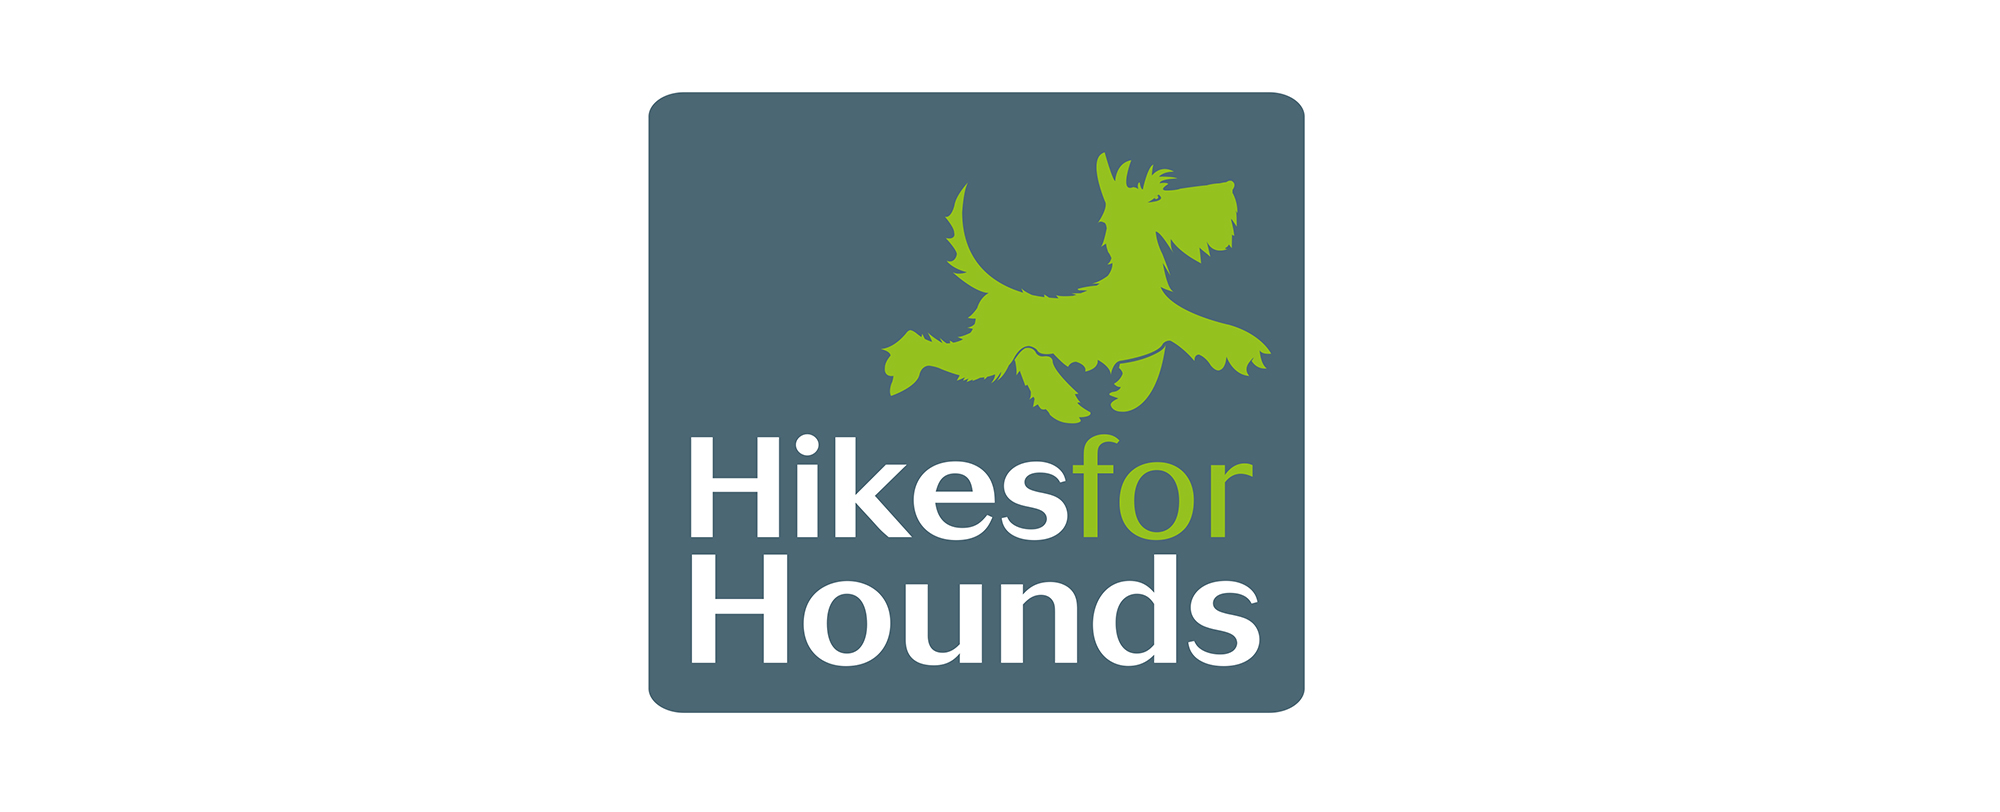 Hikes for Hounds Logo